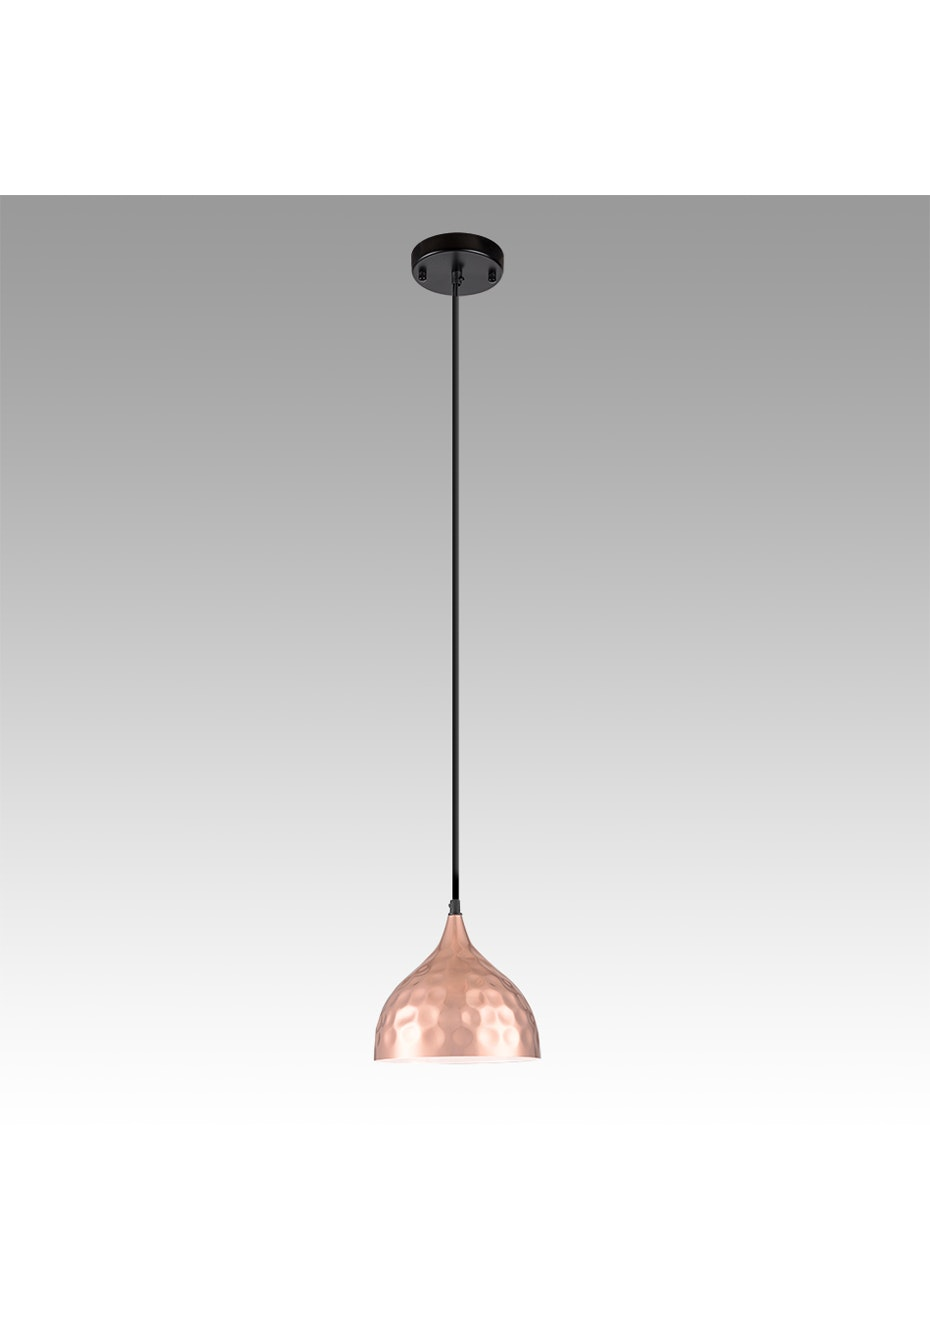 Noozi Beaten Series Pendant - Mini 170